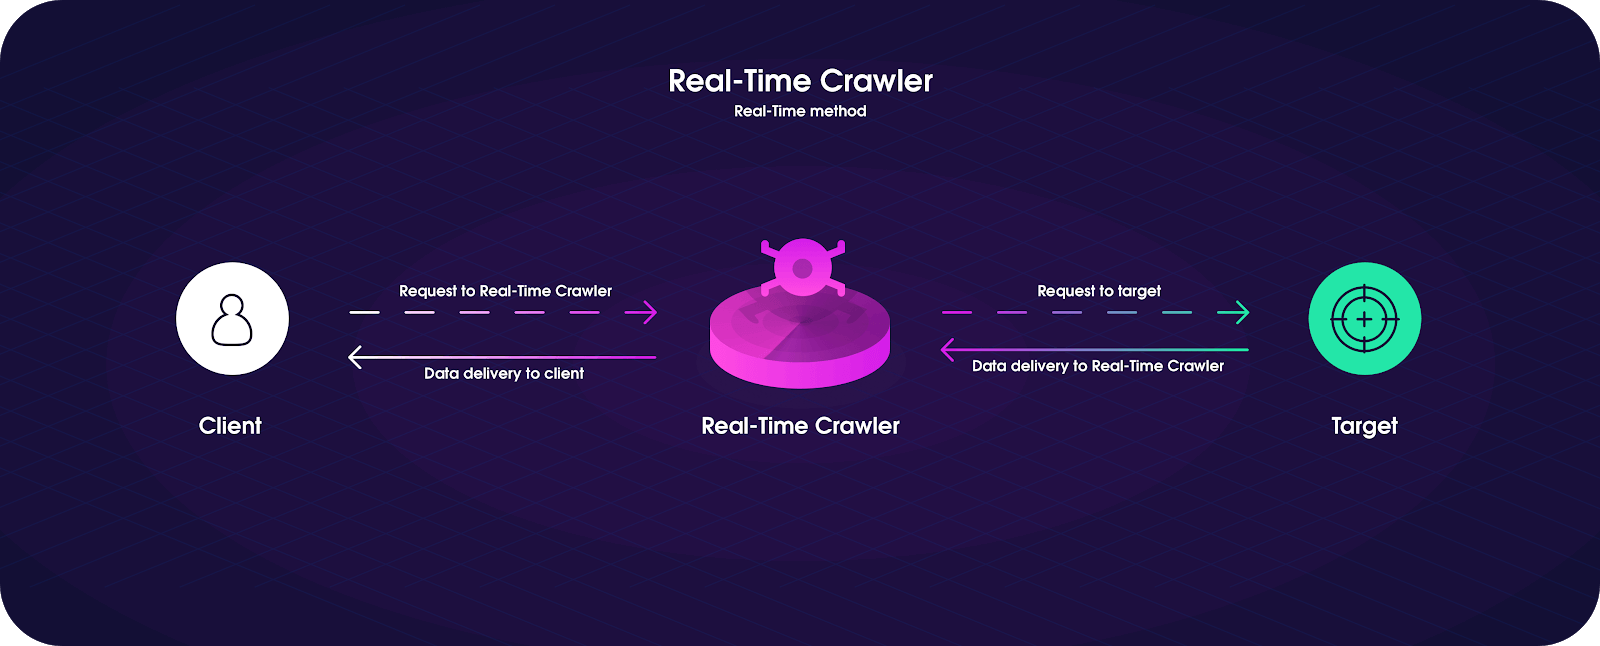 How Real-Time Crawler works